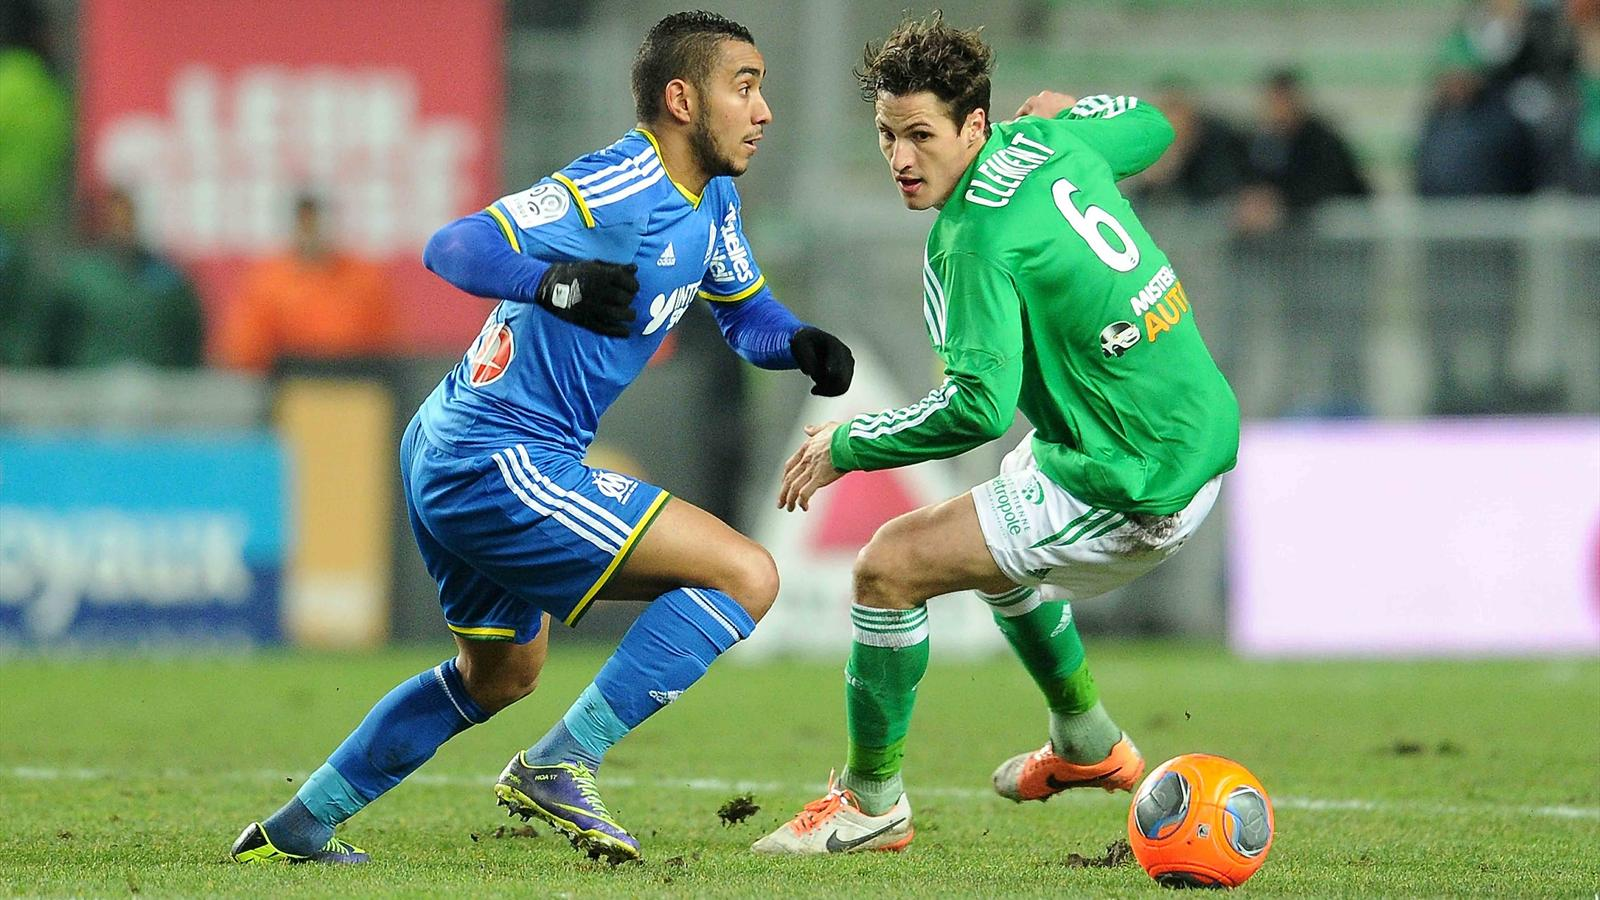 Match Olympique de Marseille vs AS Saint-Etienne en direct streaming live